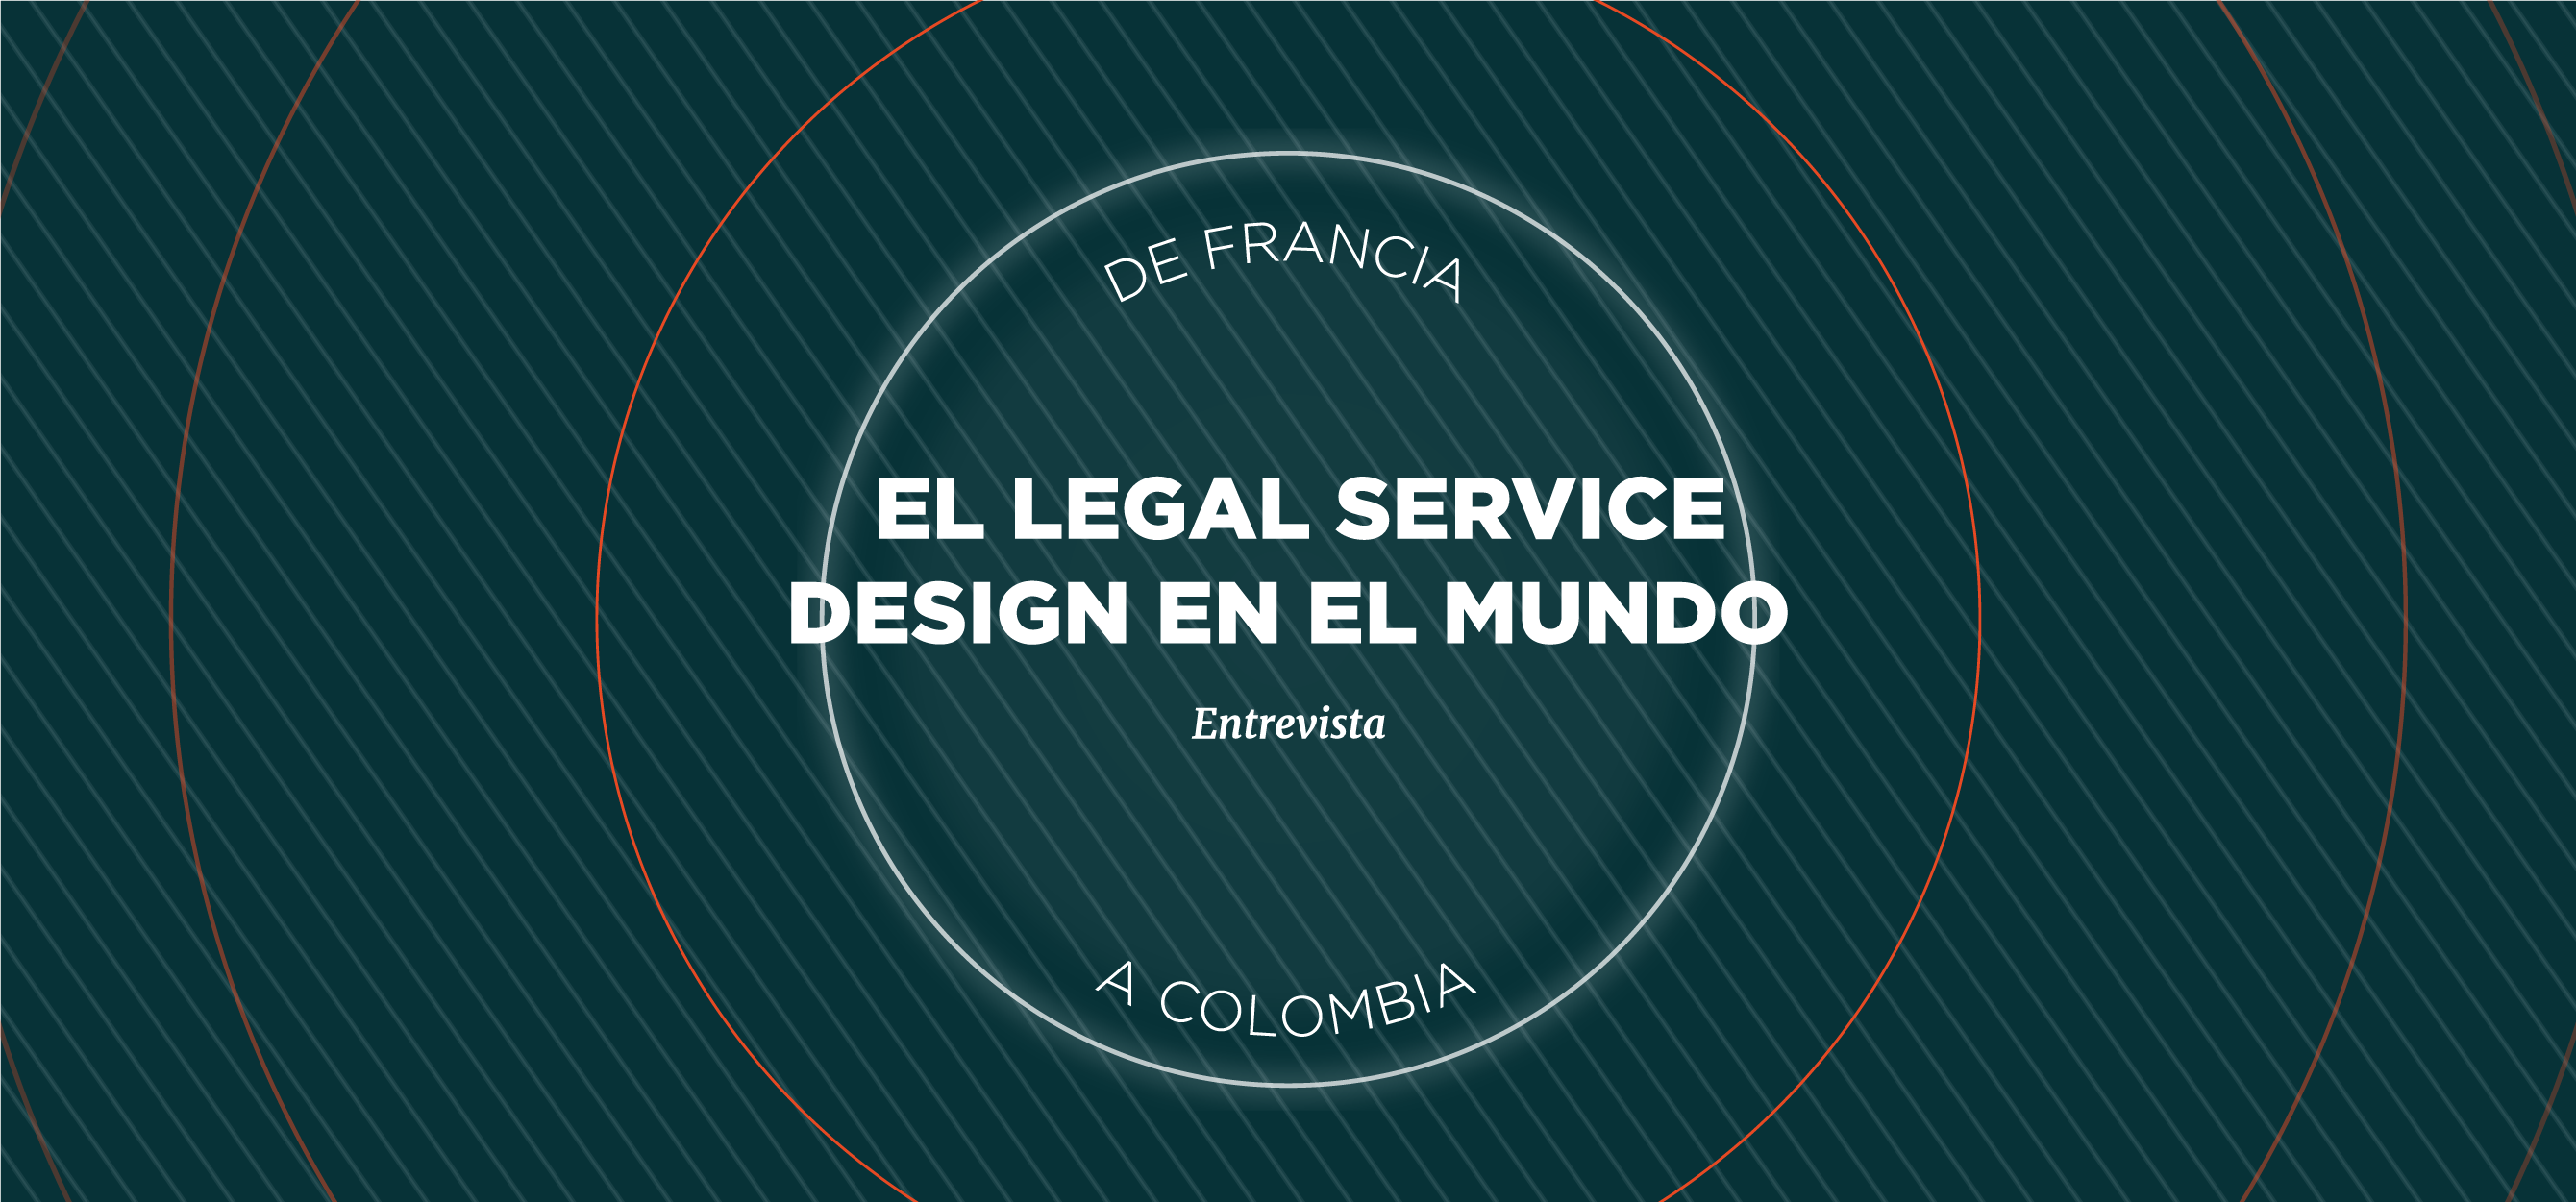 De Francia a Colombia: el Legal Service Design en el mundo